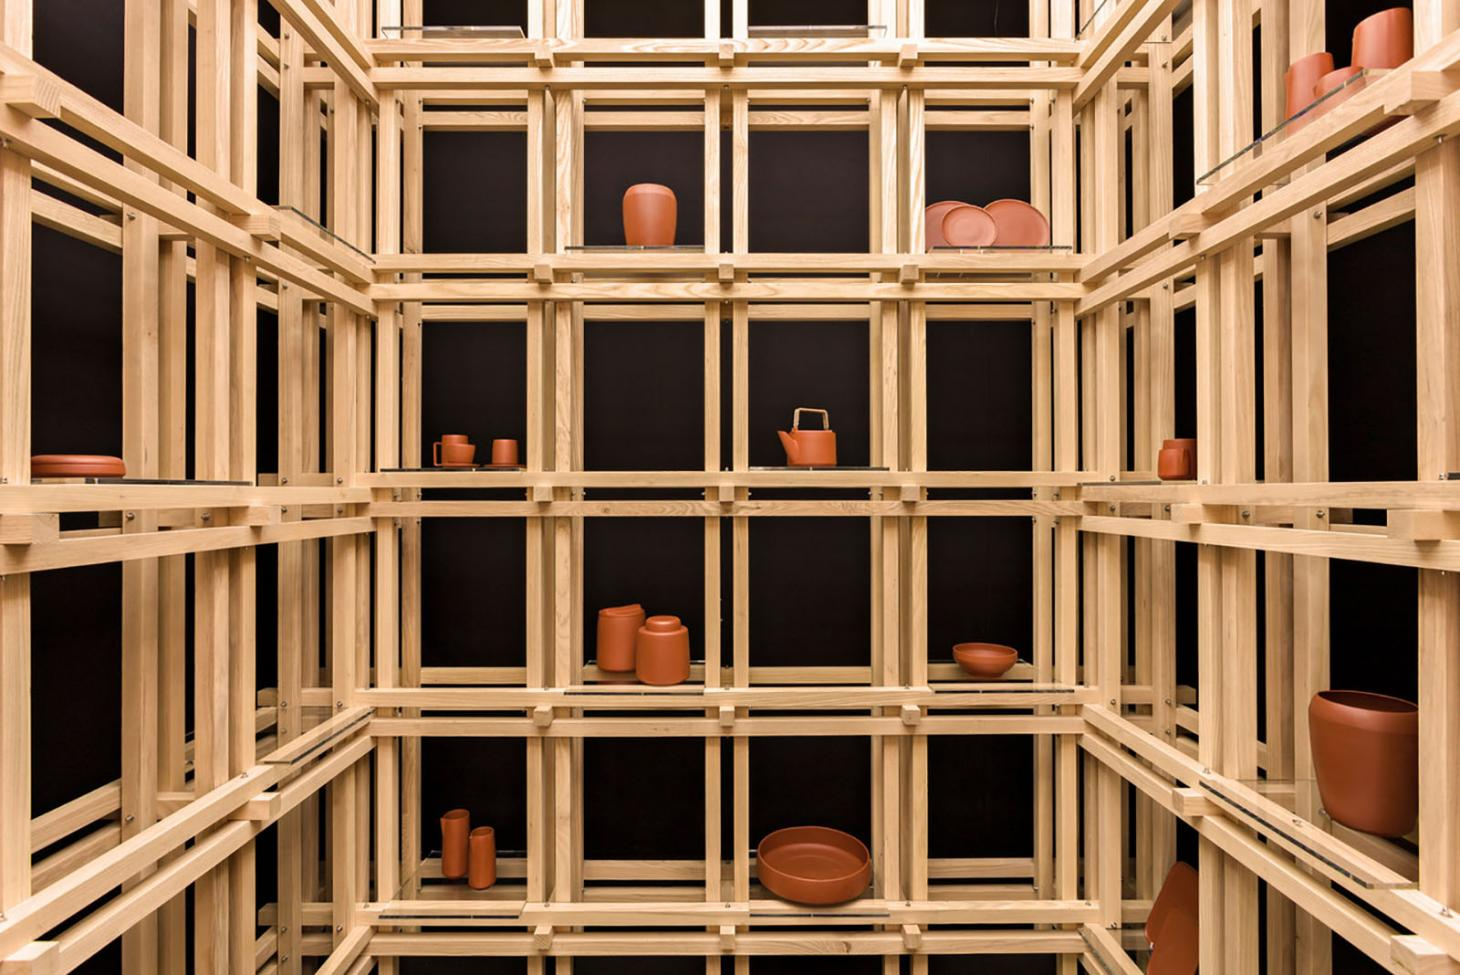 A wooden shelf structure holding ceramics